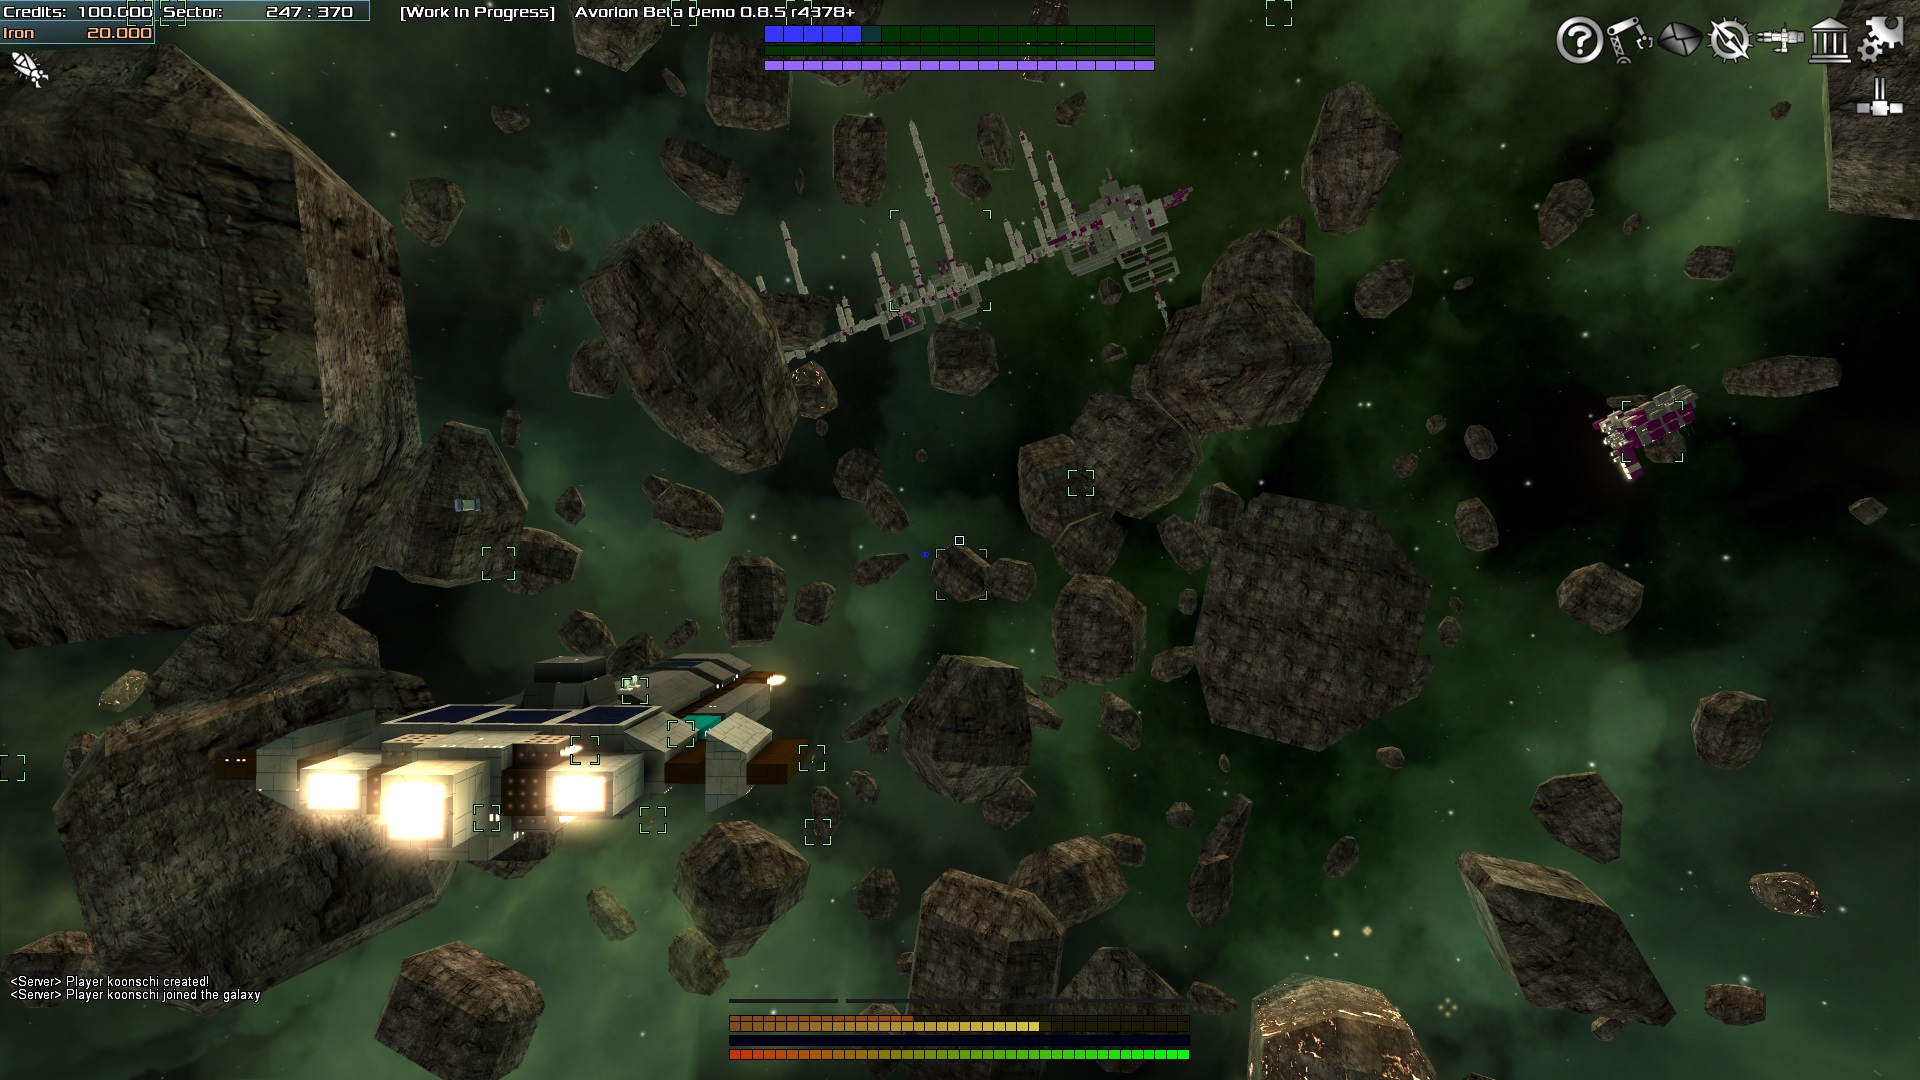 These asteroid fields are a common sight in Avorion and contain secret stashes of loot and valuable resources